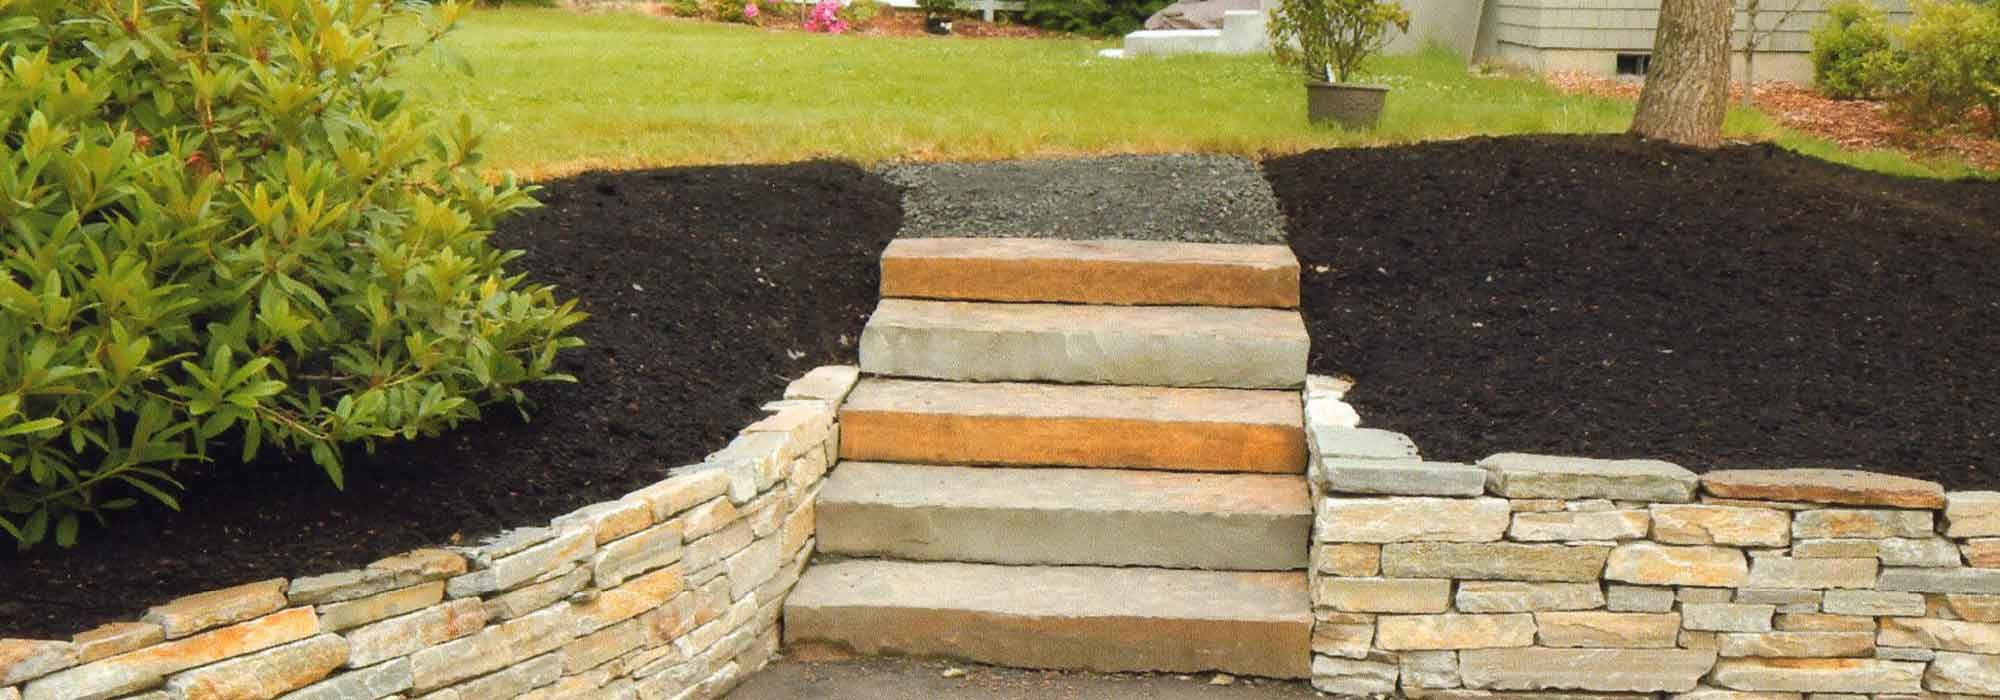 L & L Excavating & Landscaping Stone & Bark